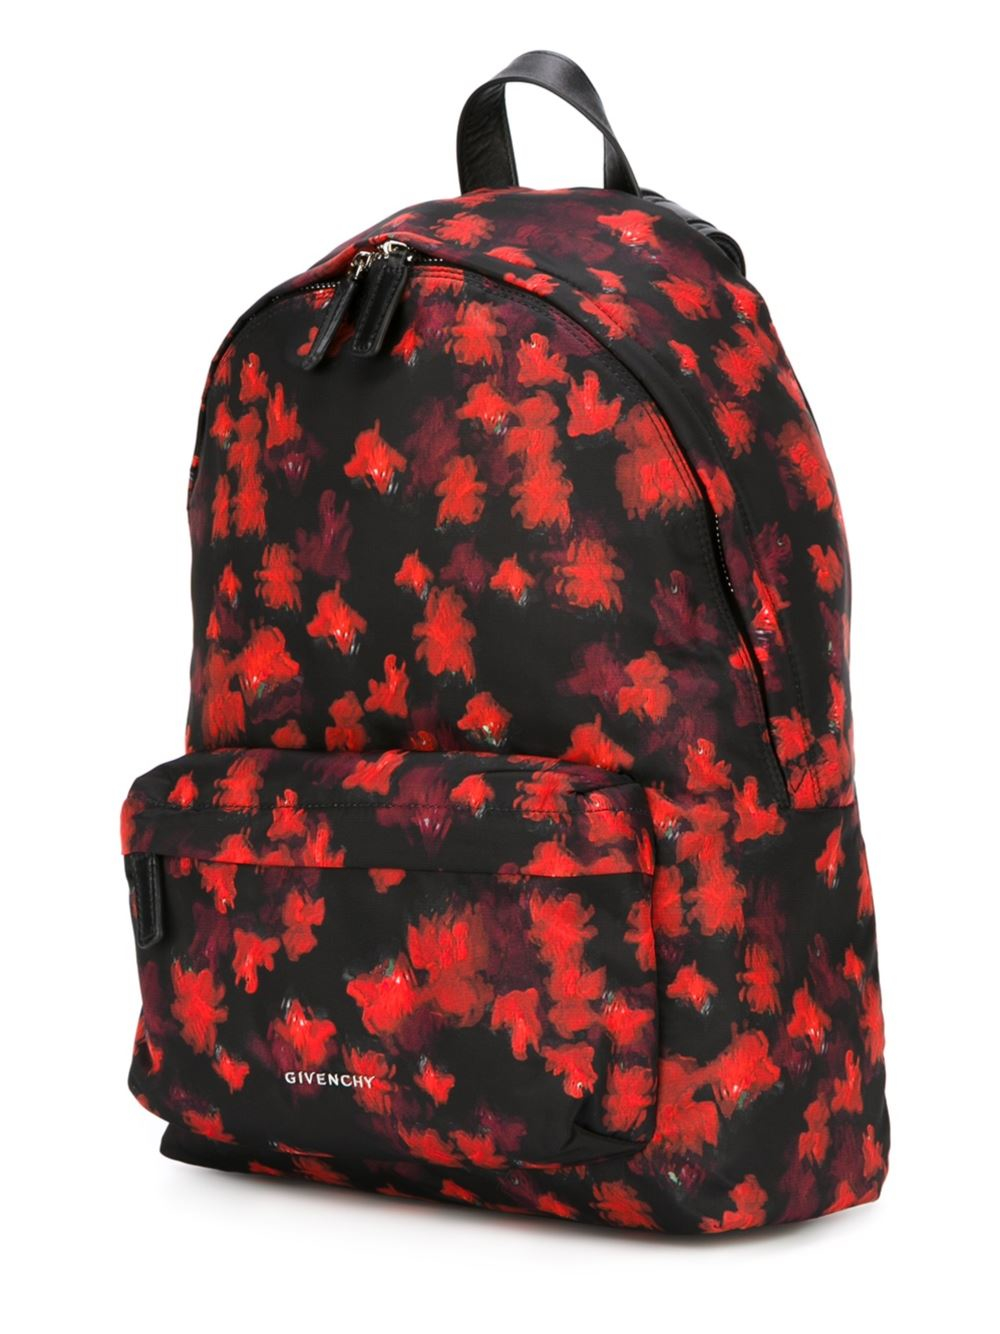 Givenchy Abstract Print Backpack in Black